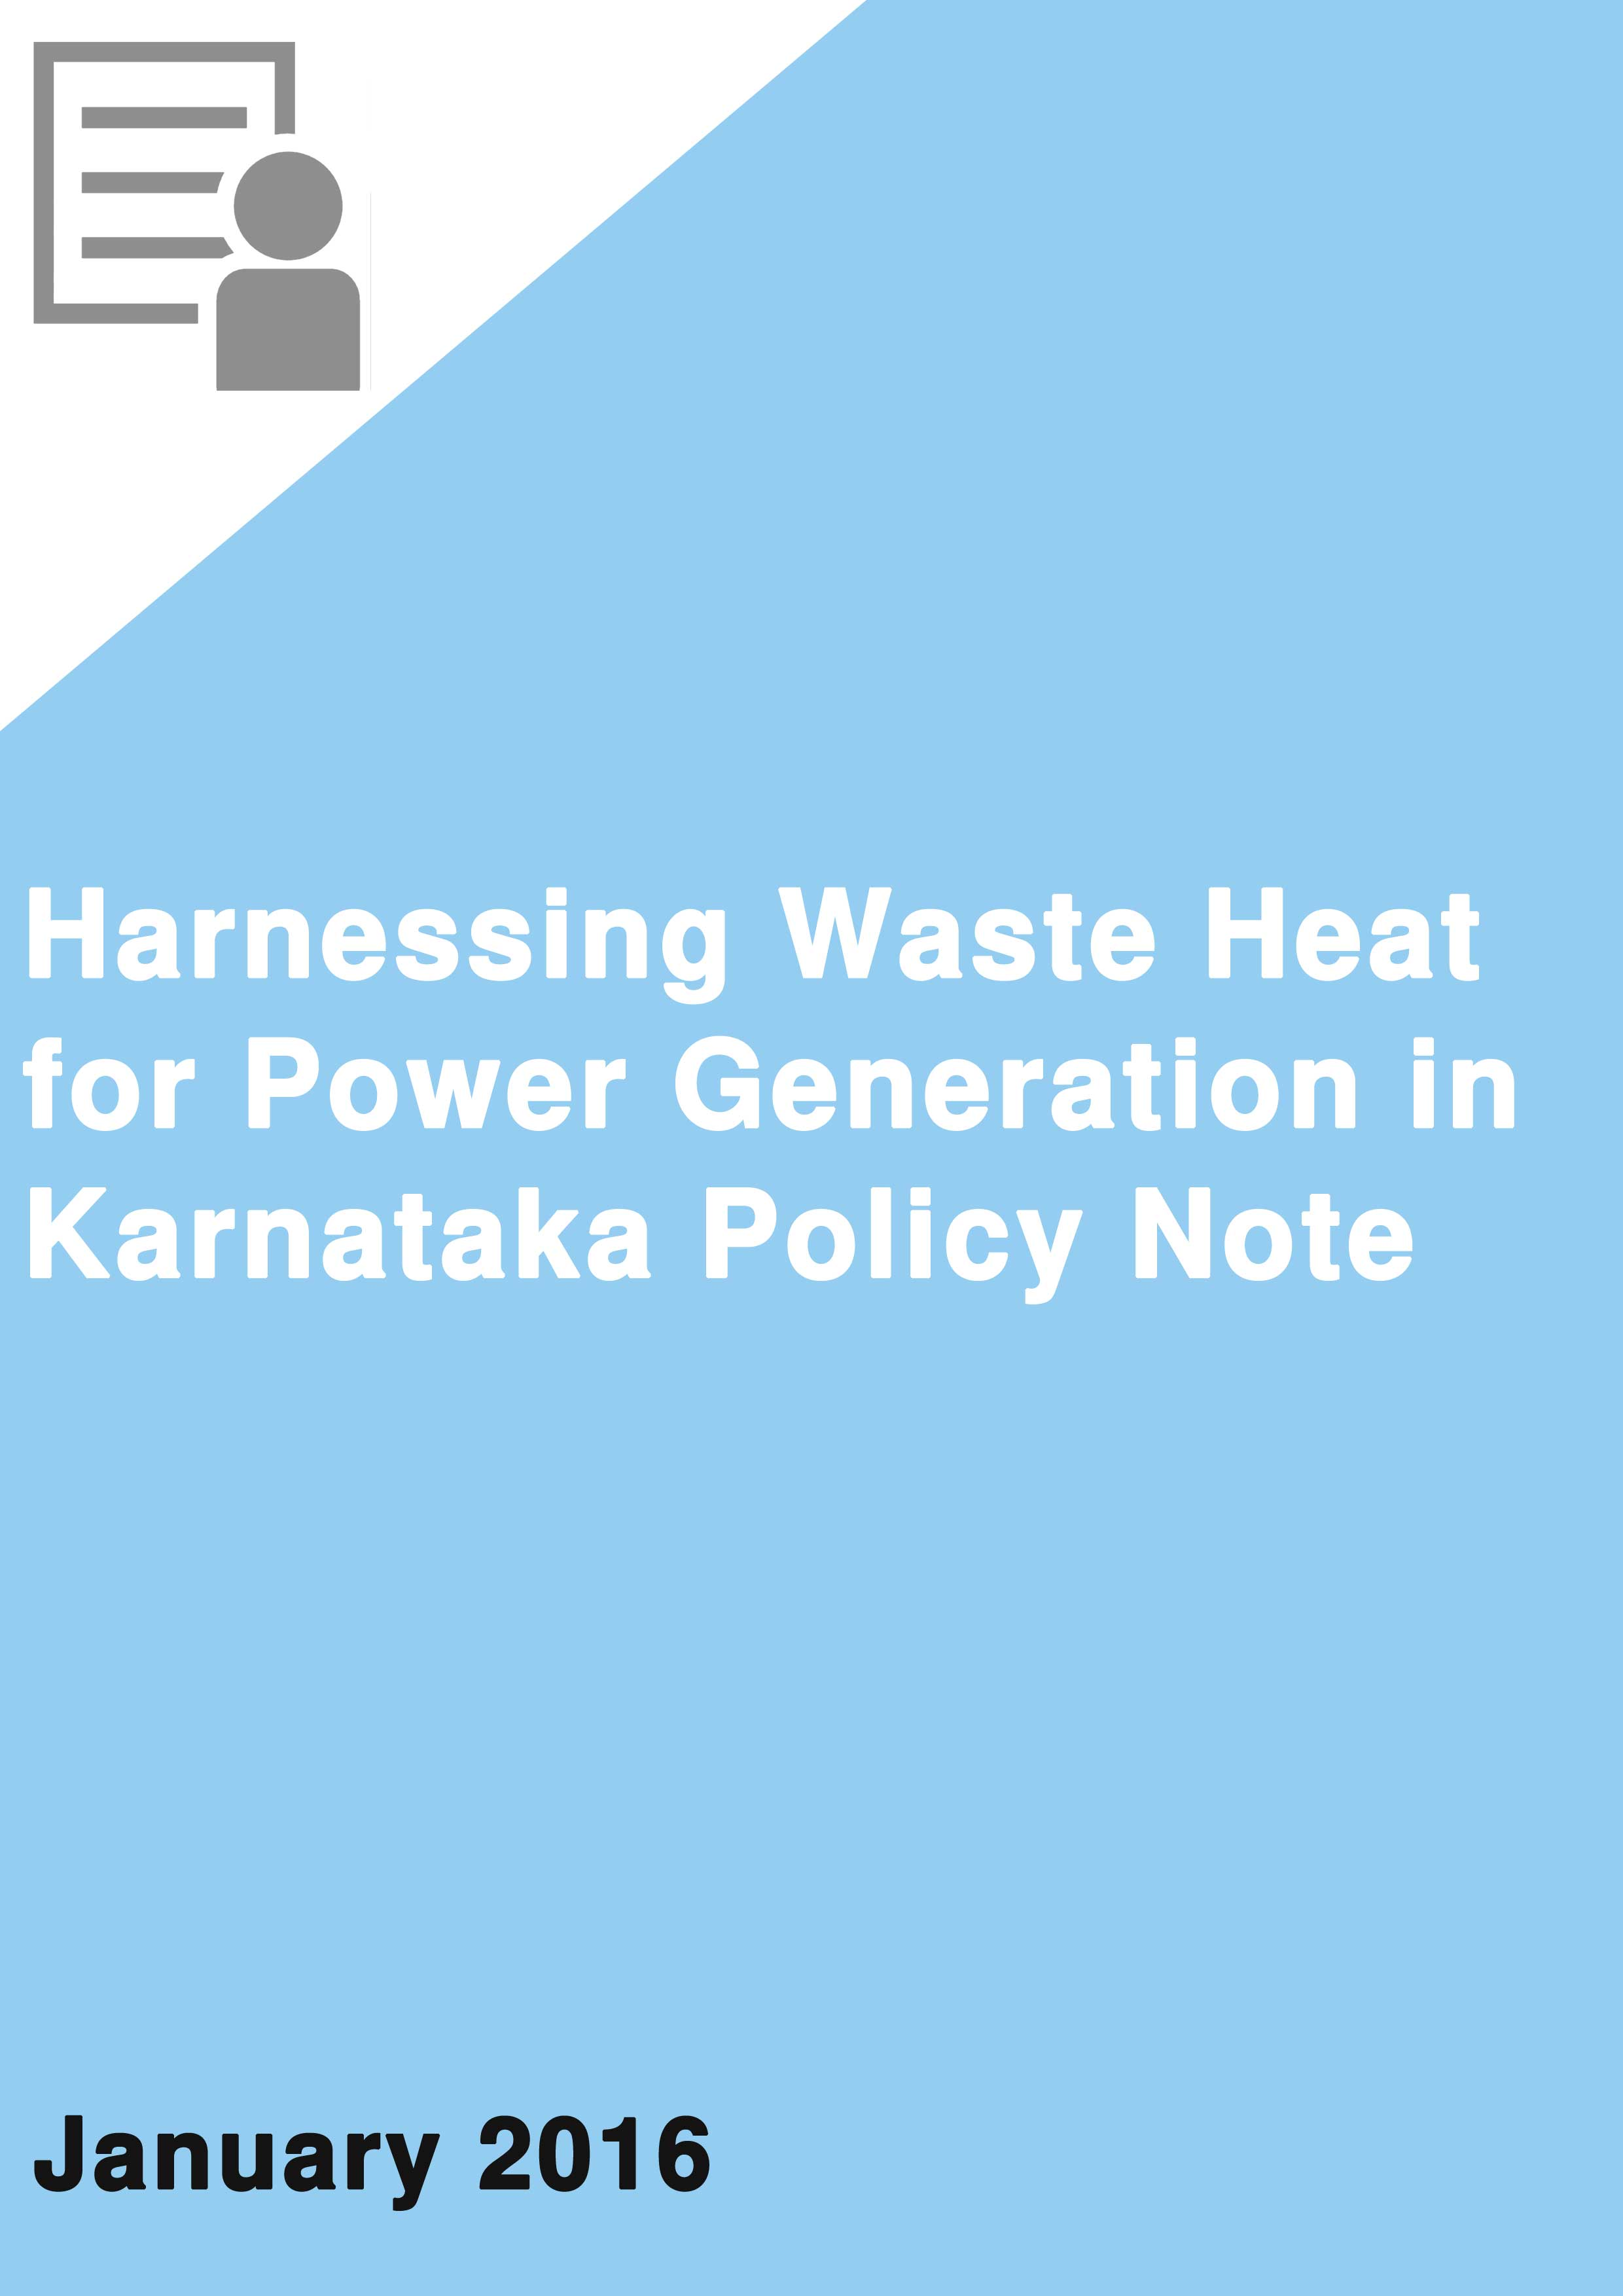 Harnessing Waste Heat for Power Generation in Karnataka Policy Note